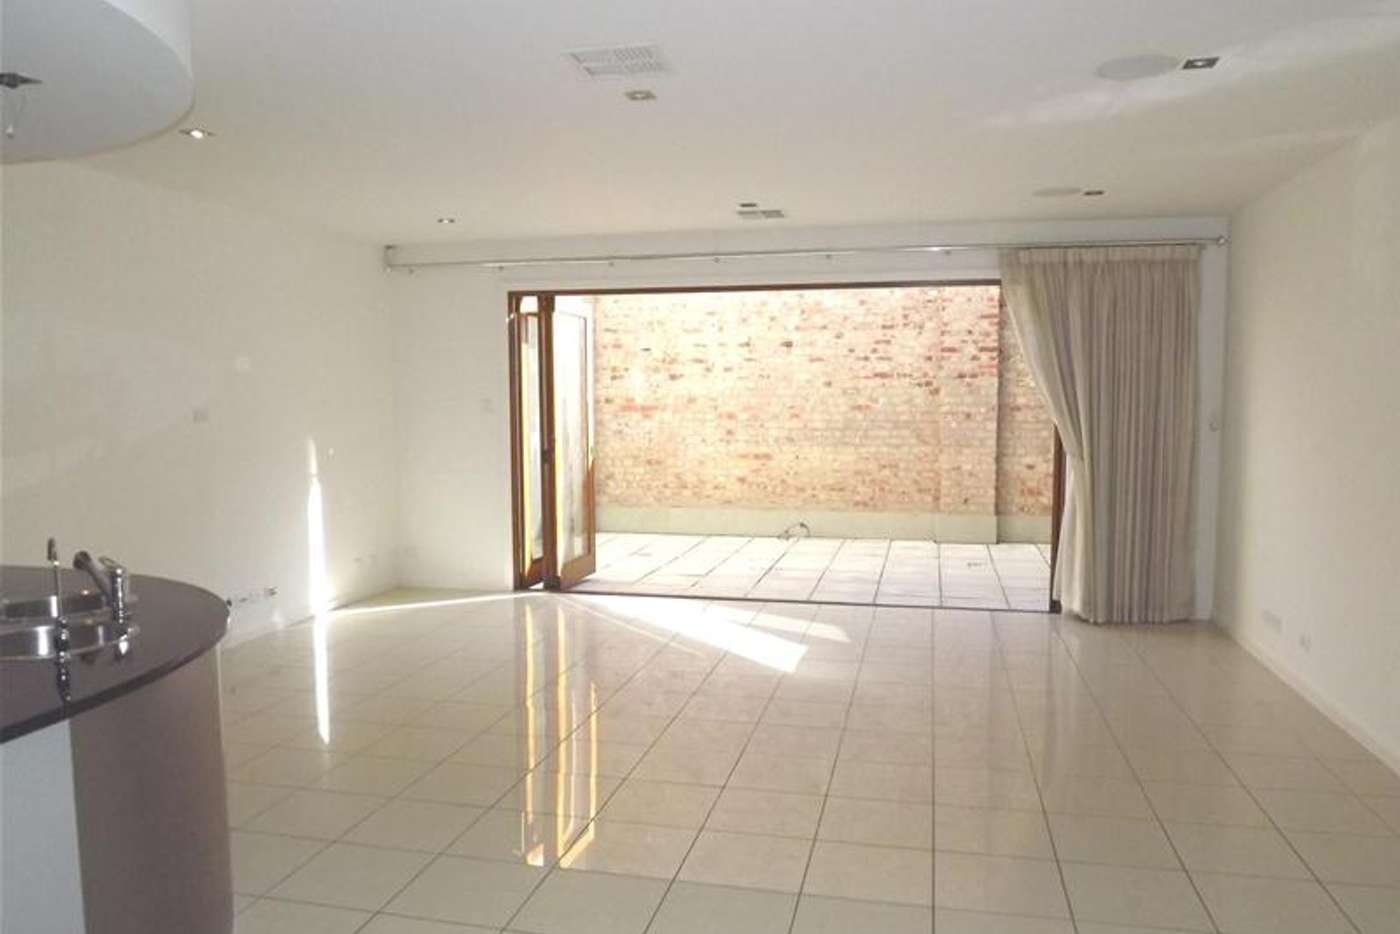 Fifth view of Homely house listing, 5 Draper Mews, Adelaide SA 5000